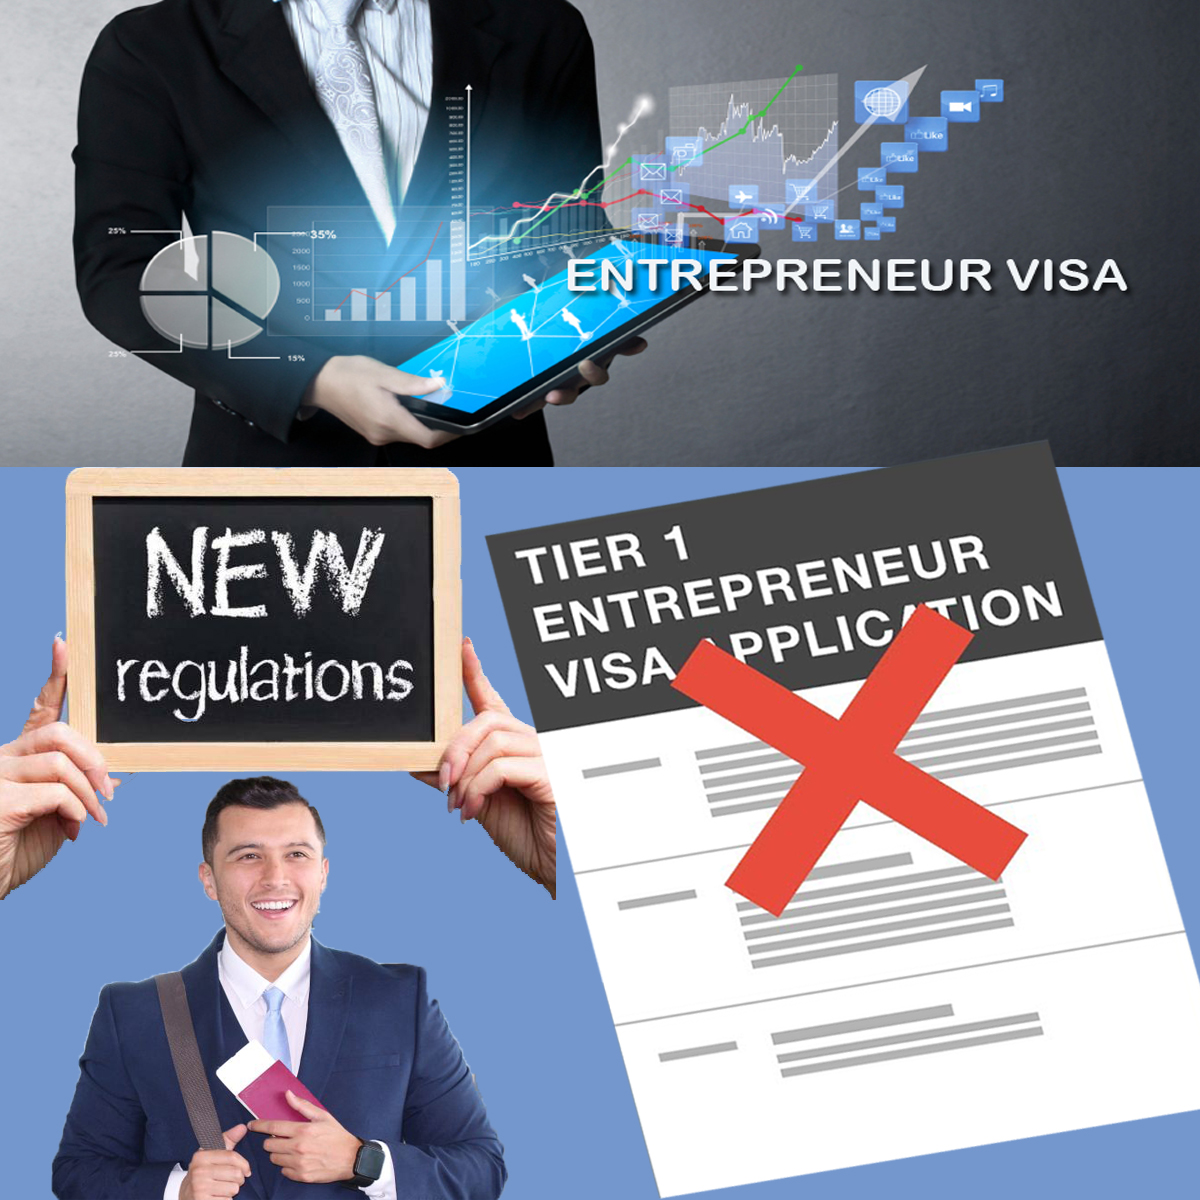 Is it the End of Entrepreneur Visa in the UK?